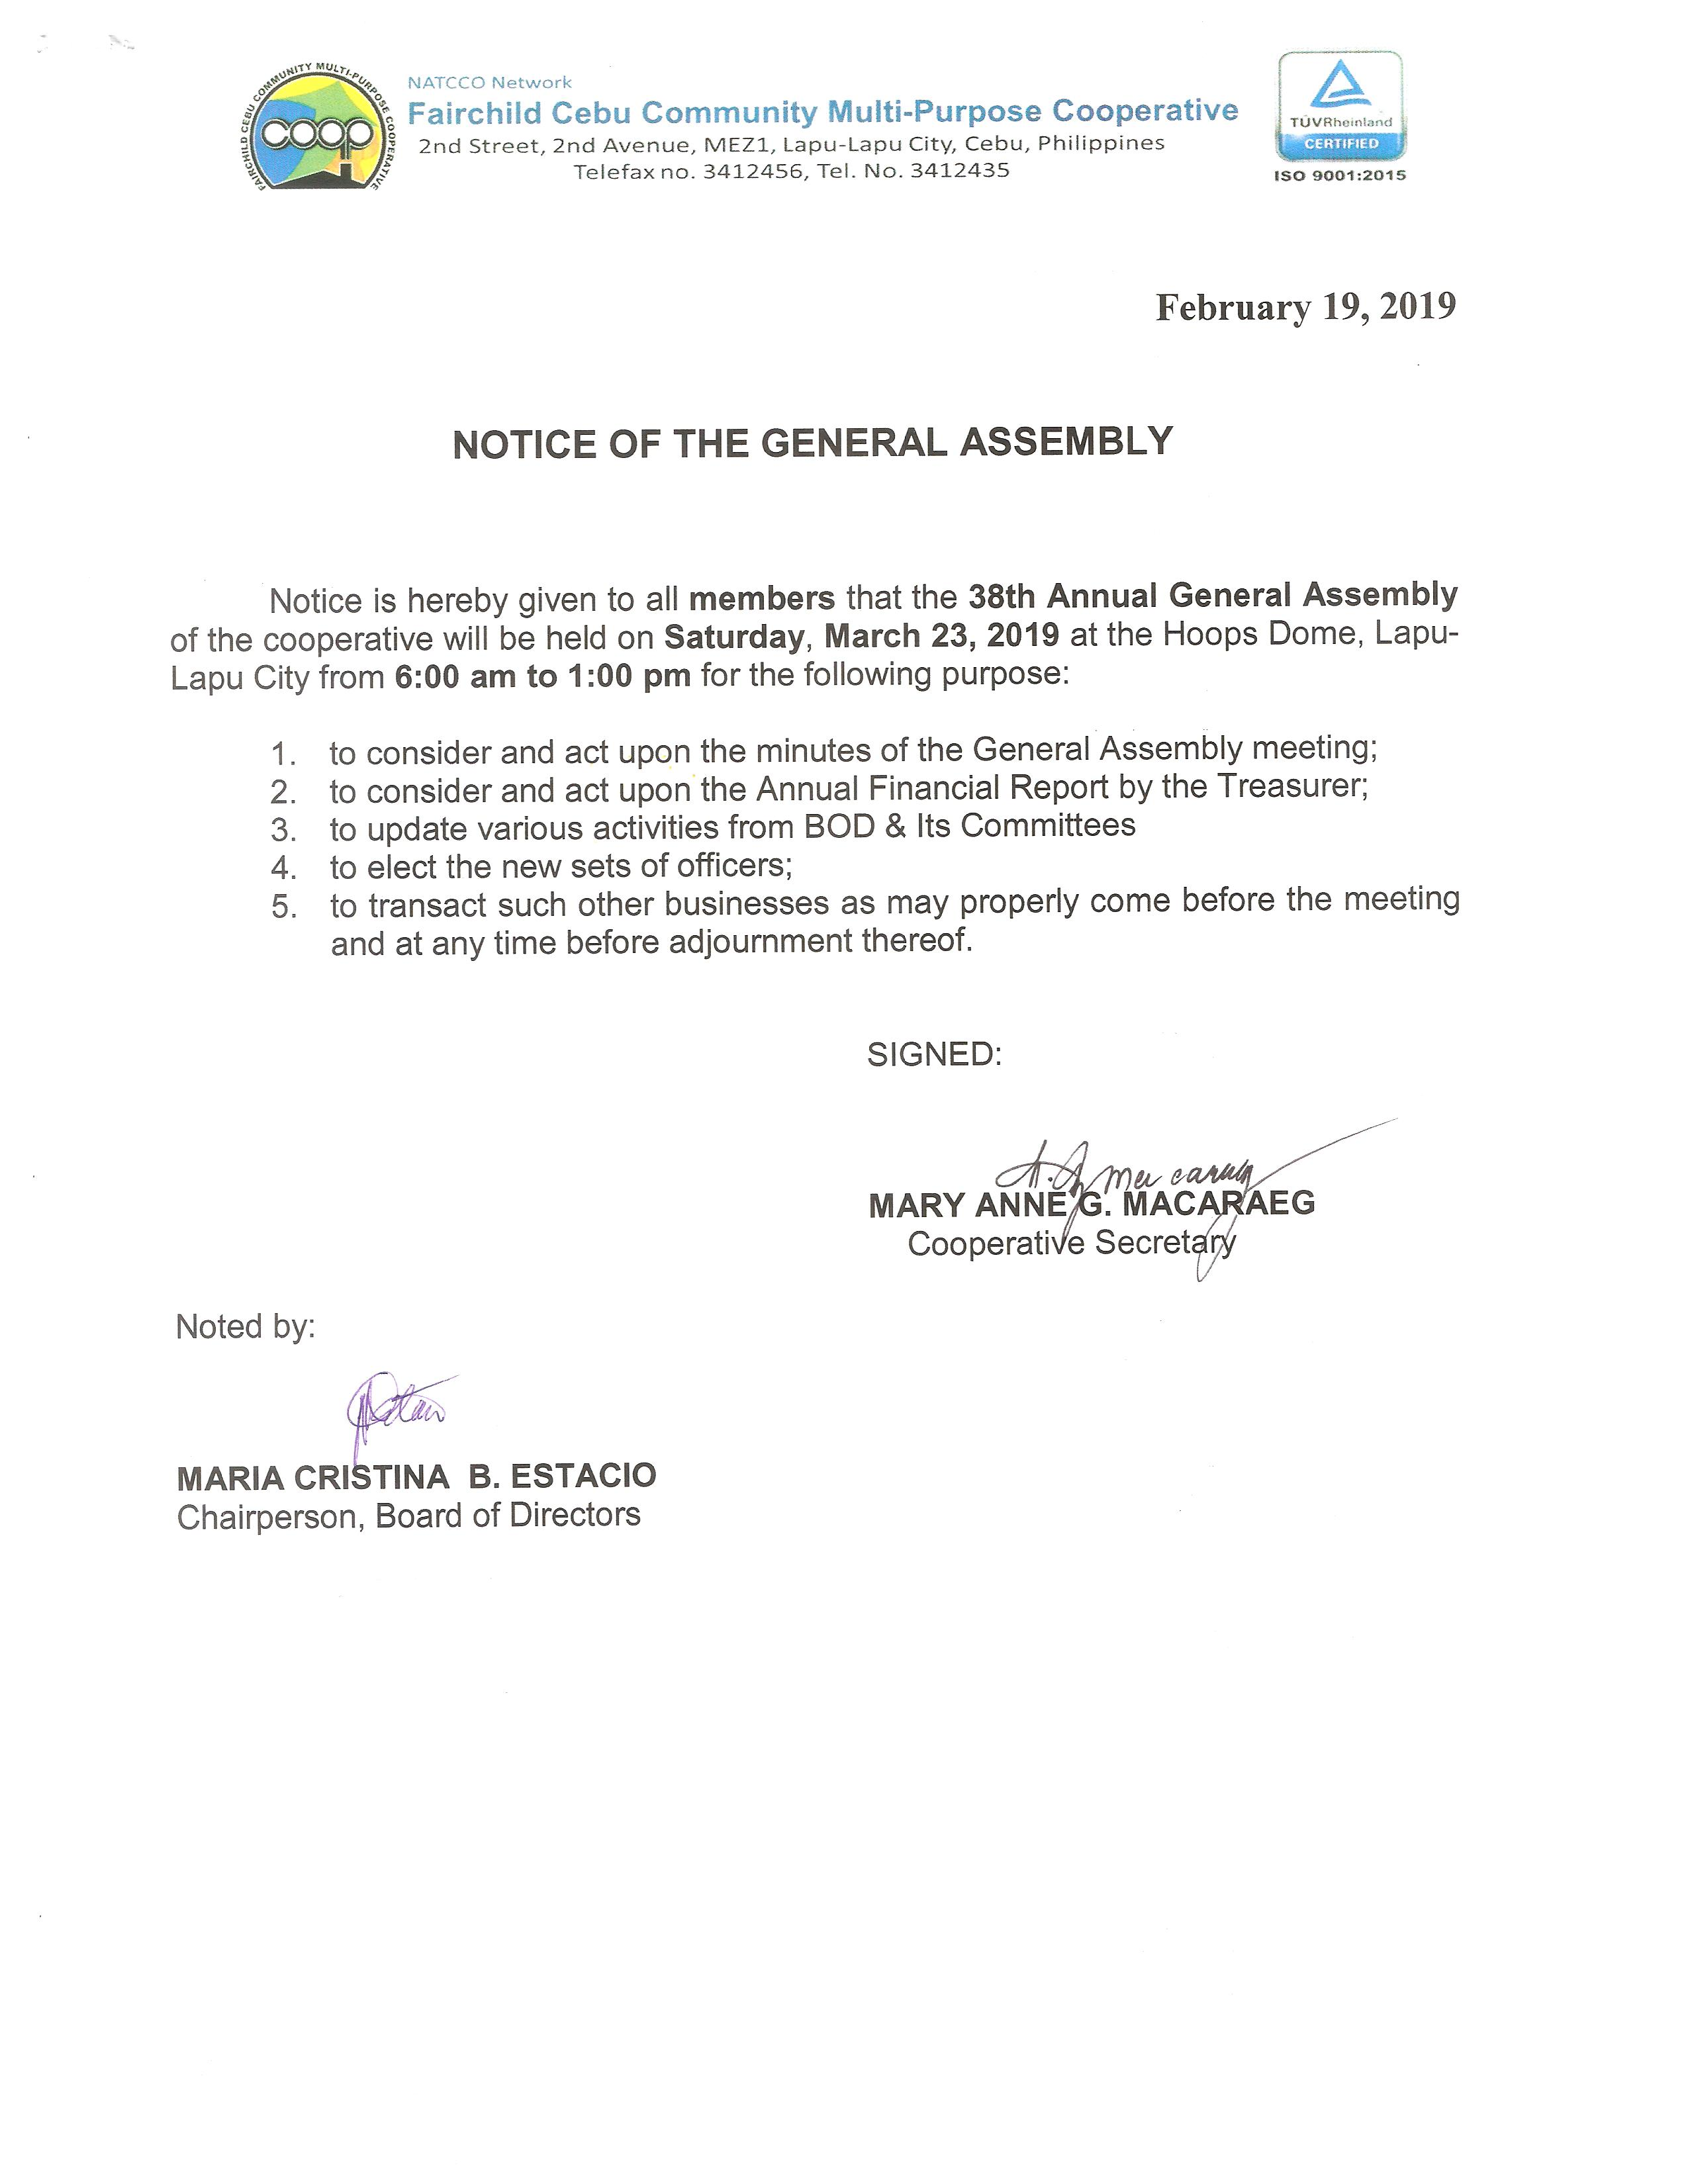 Notice of 38th Annual General Assembly